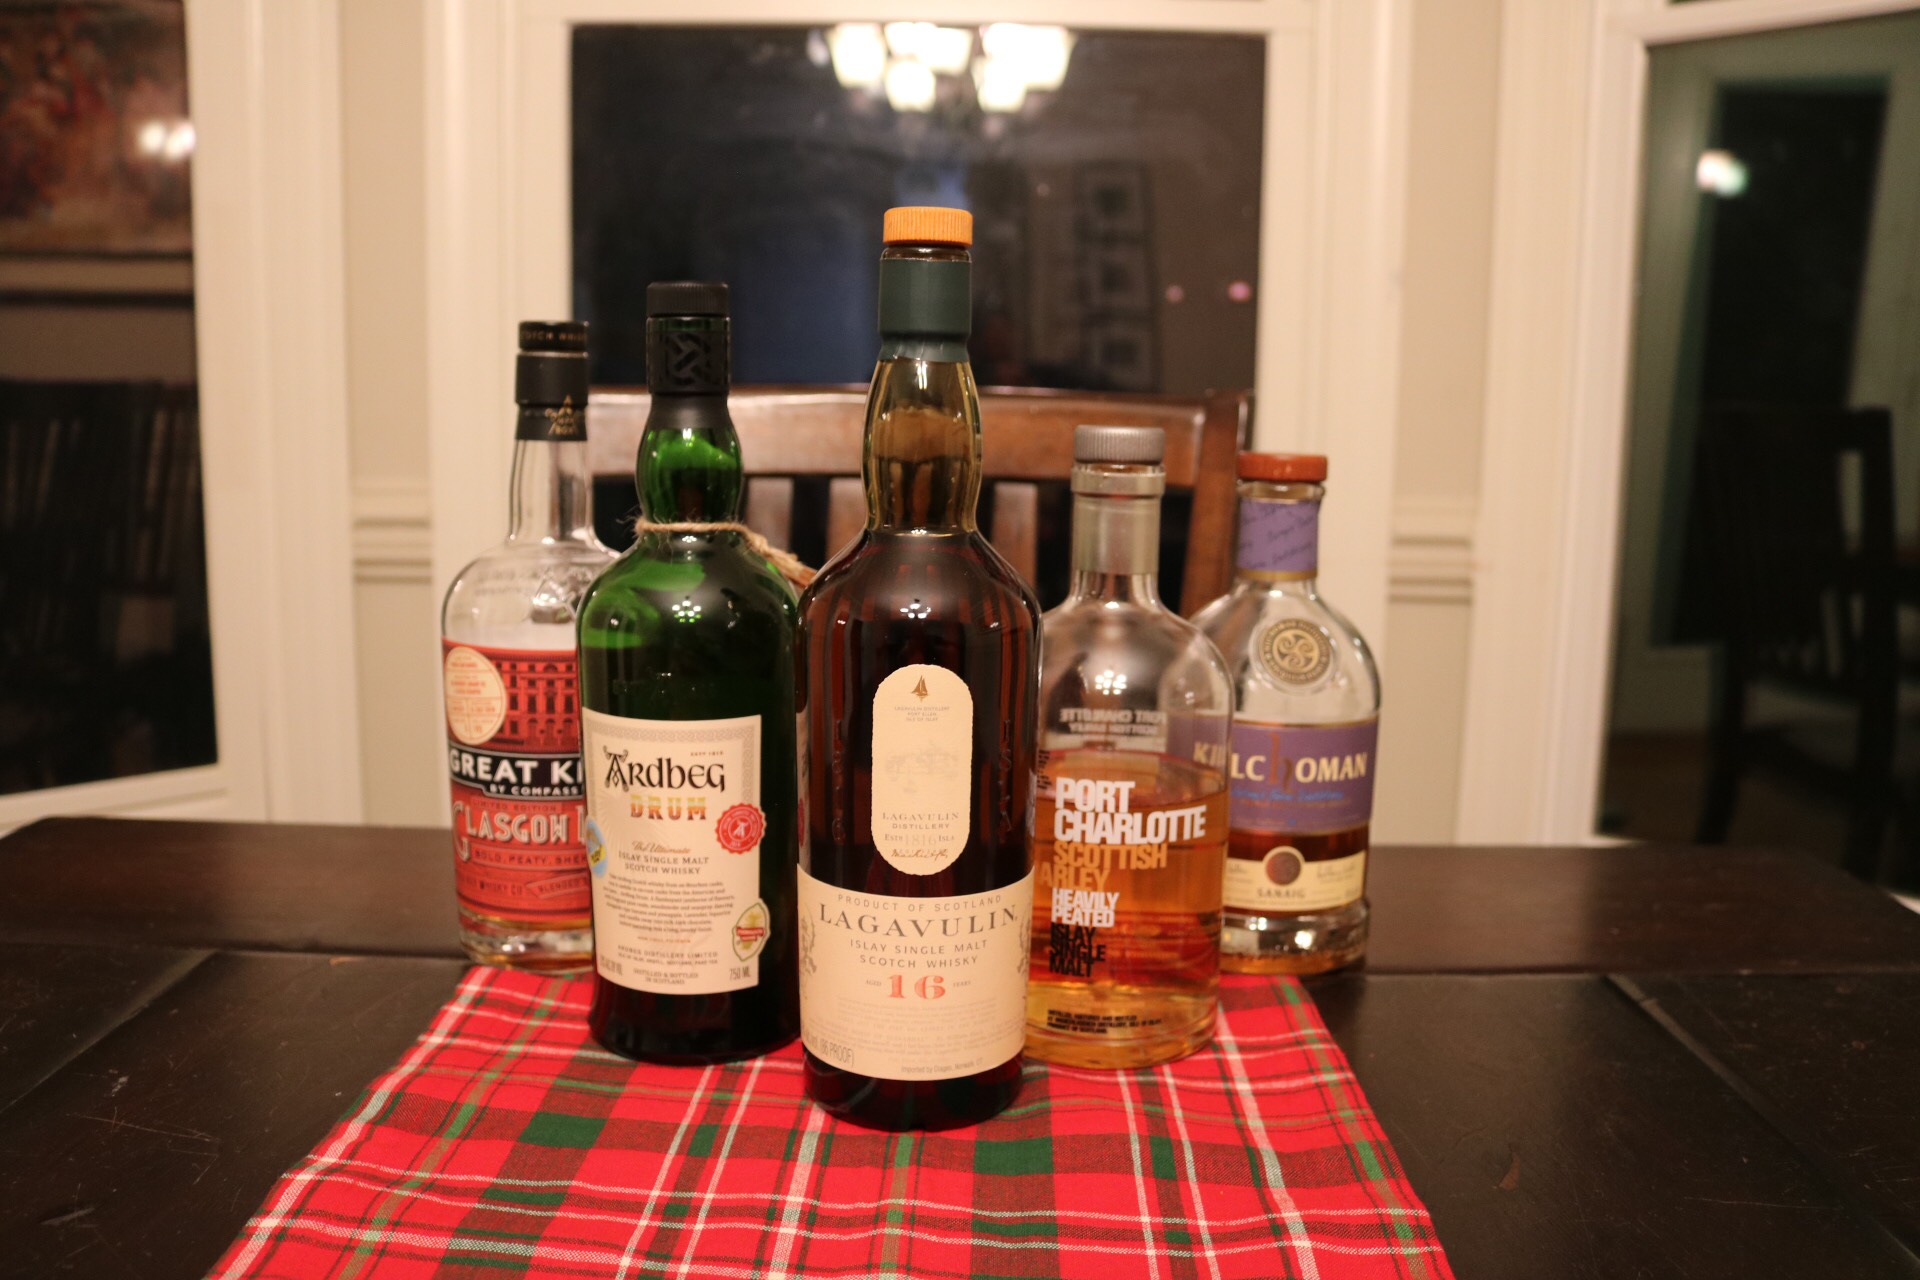 The bottles we sampled during this tasting (Not pictured: The Octomore 8.2)